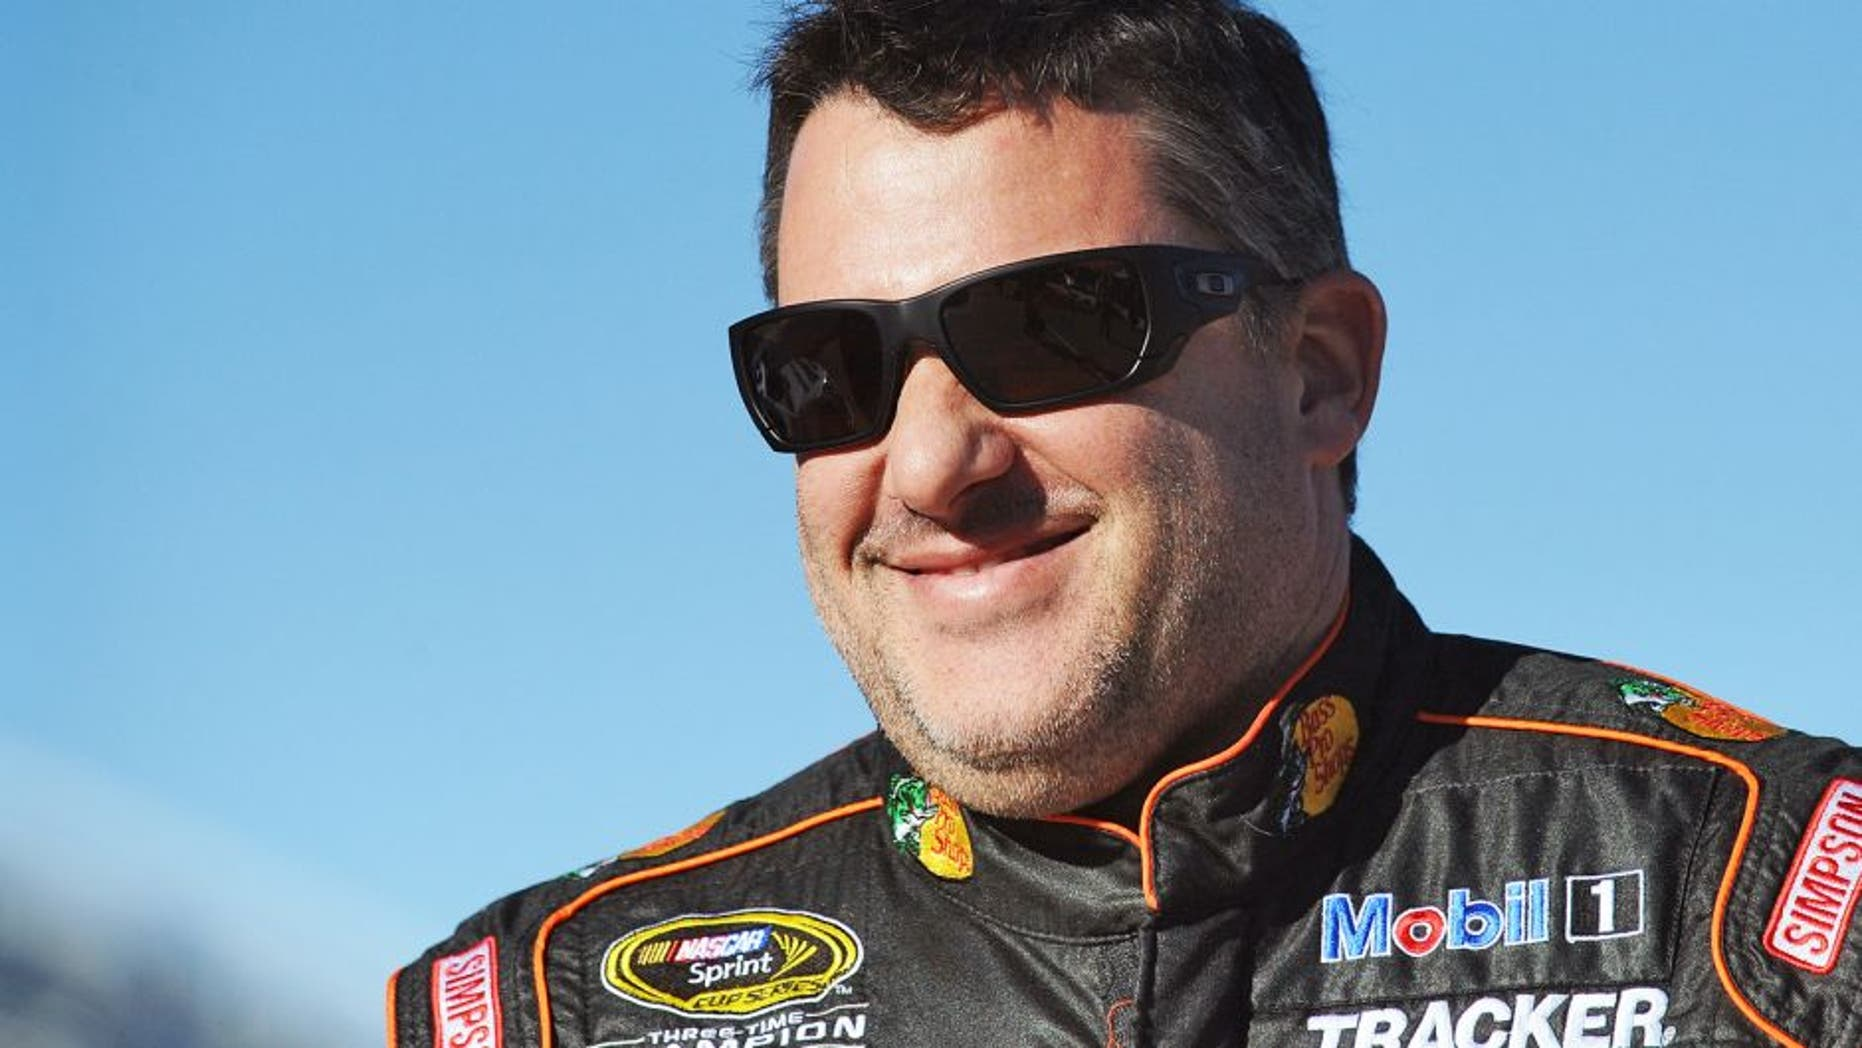 MARTINSVILLE, VA - OCTOBER 30: Tony Stewart, driver of the #14 Bass Pro Shops/Mobil 1 Chevrolet, stands on the grid during qualifying for the NASCAR Sprint Cup Series Goody's Headache Relief Shot 500 at Martinsville Speedway on October 30, 2015 in Martinsville, Virginia. (Photo by Rainier Ehrhardt/Getty Images)